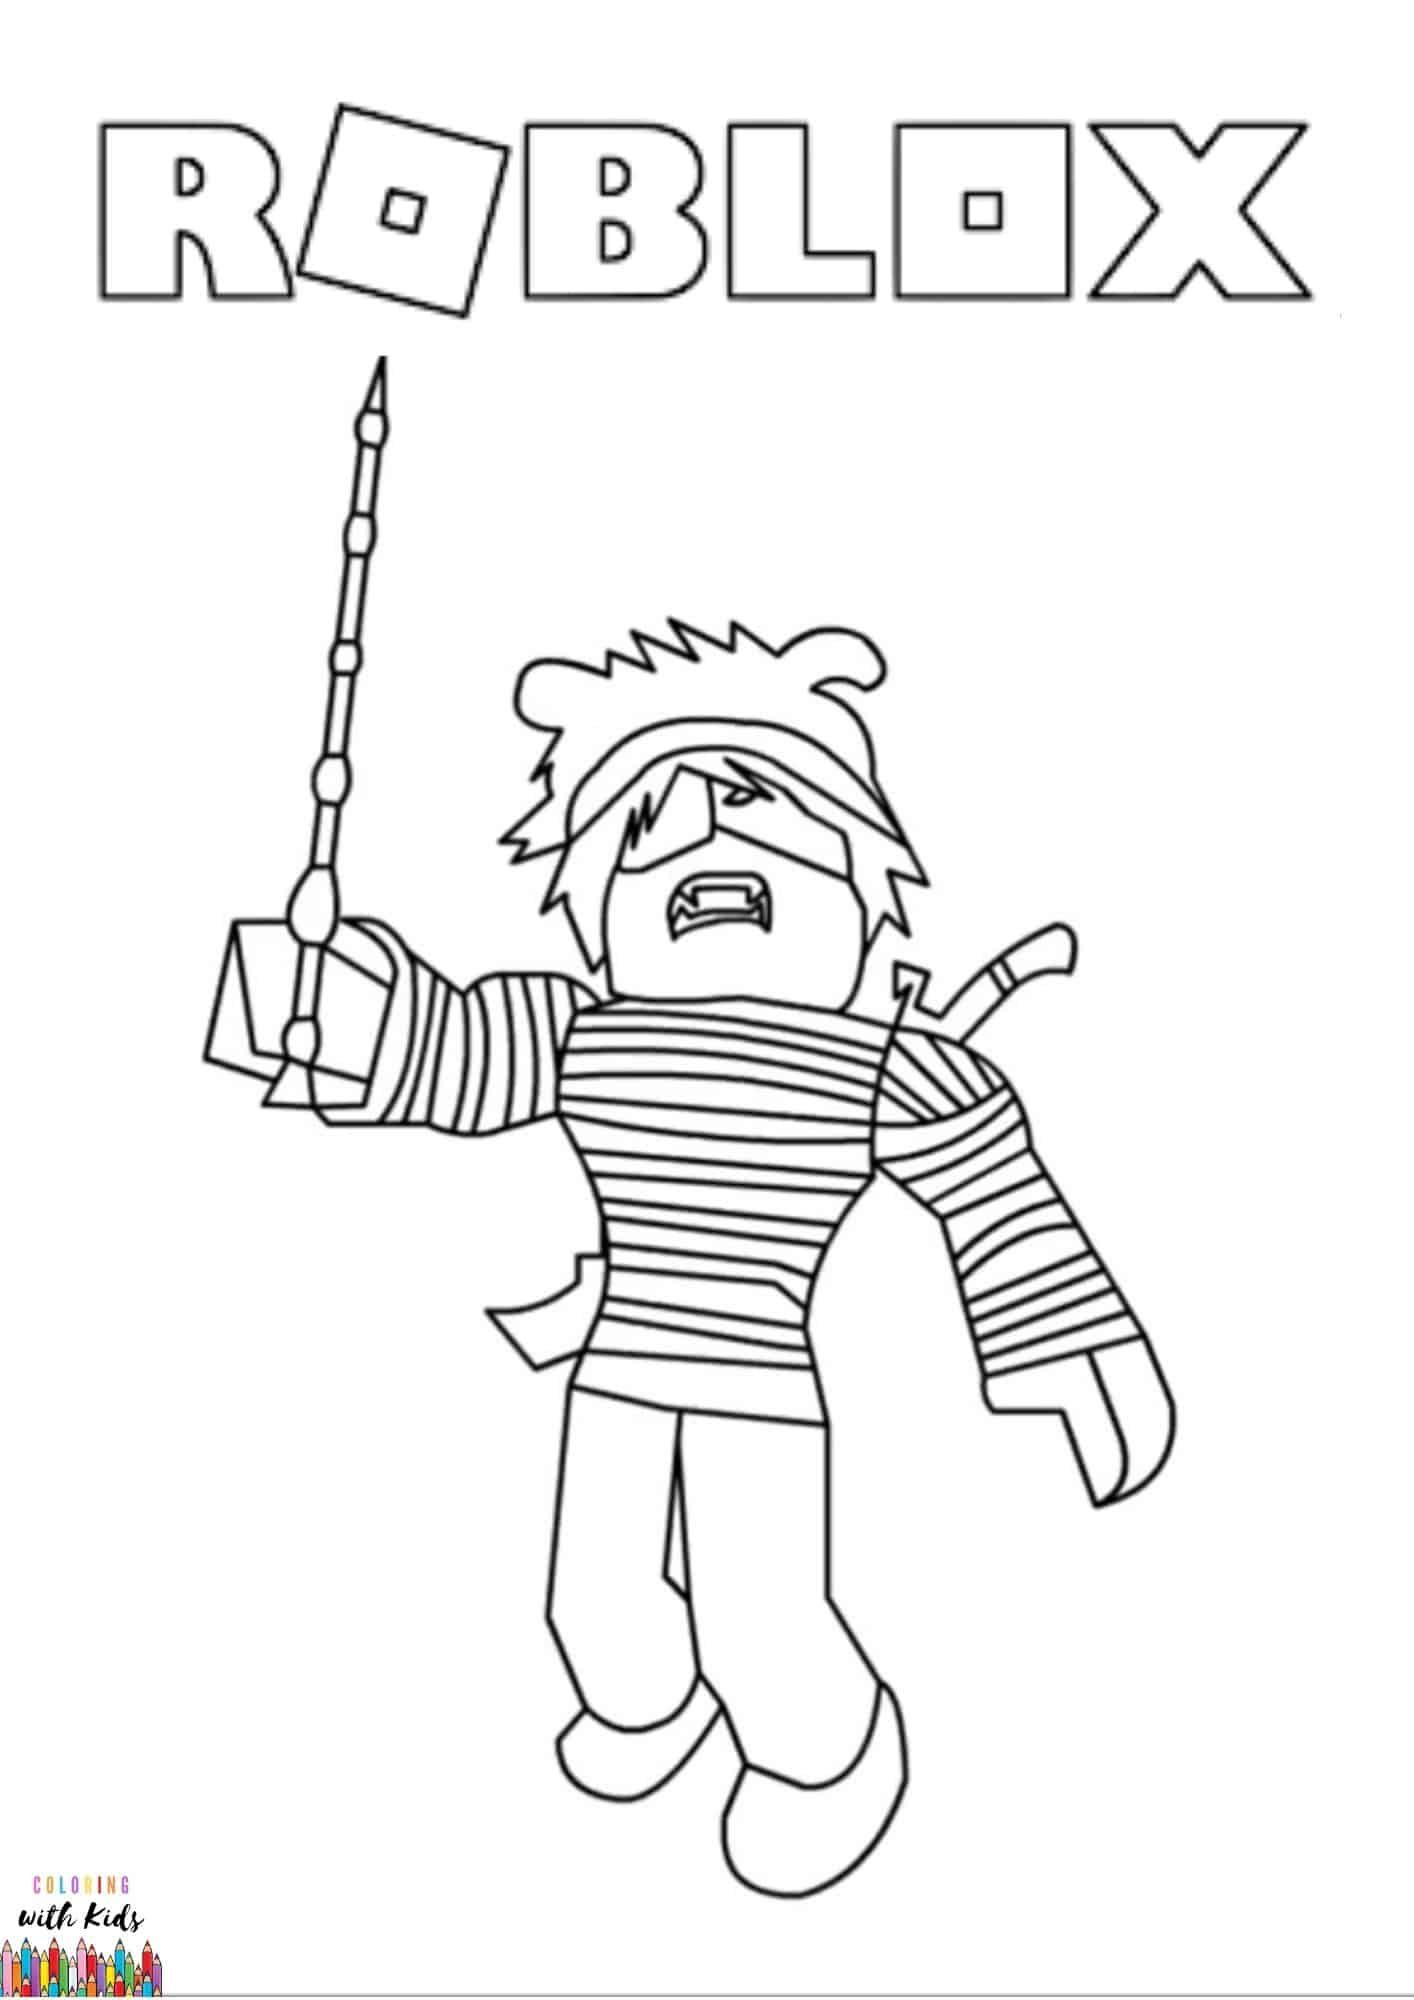 Roblox Coloring Page Image Credit Roblox Avatar Drawing By Yadia Chenia Permission For Pers Pirate Coloring Pages Witch Coloring Pages Coloring Pages